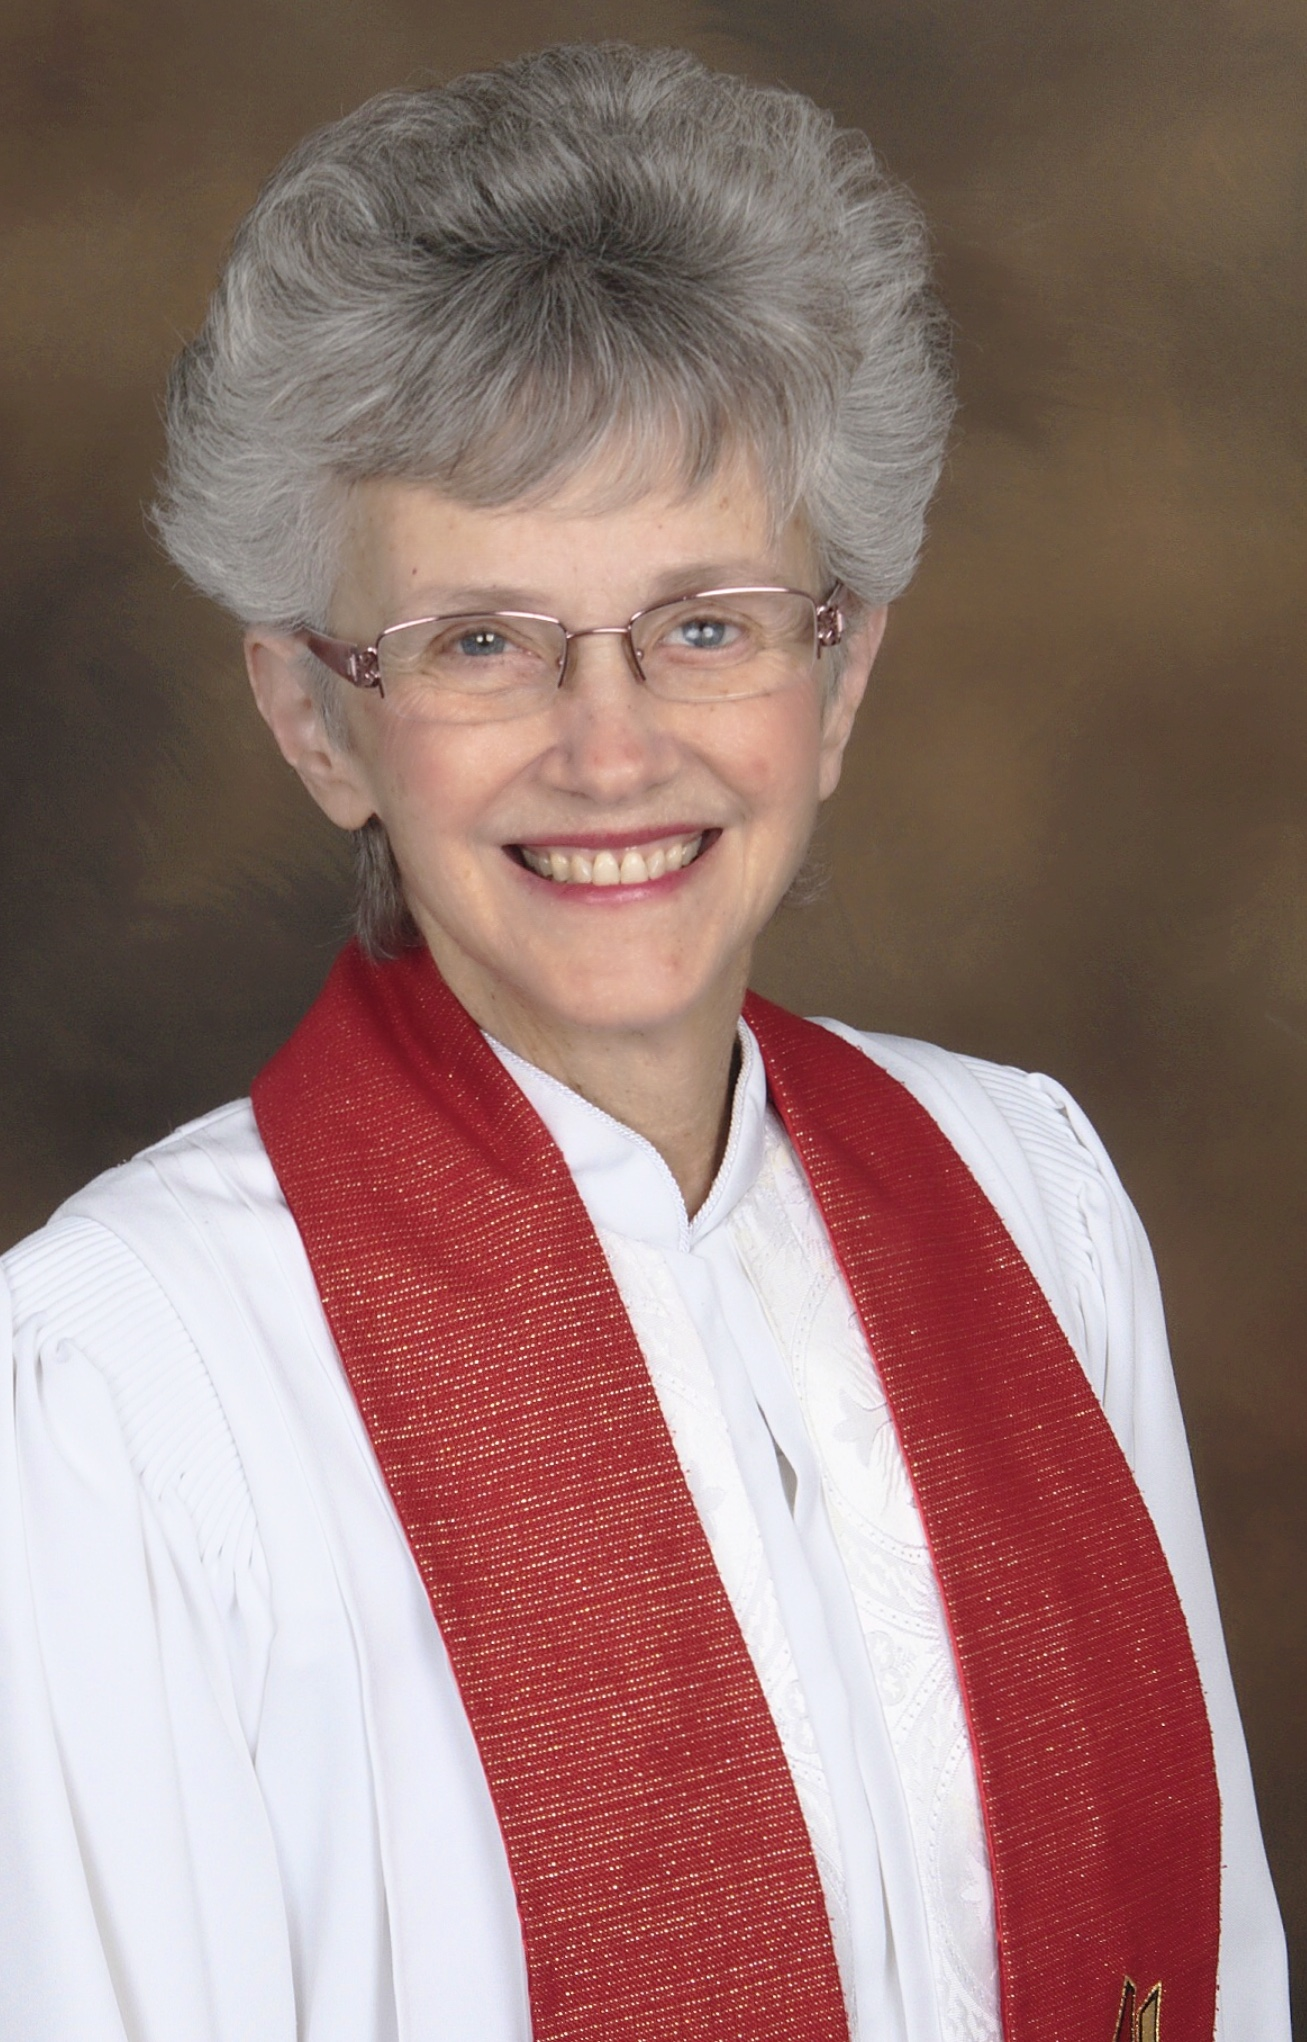 Bishop Peggy A. Johnson